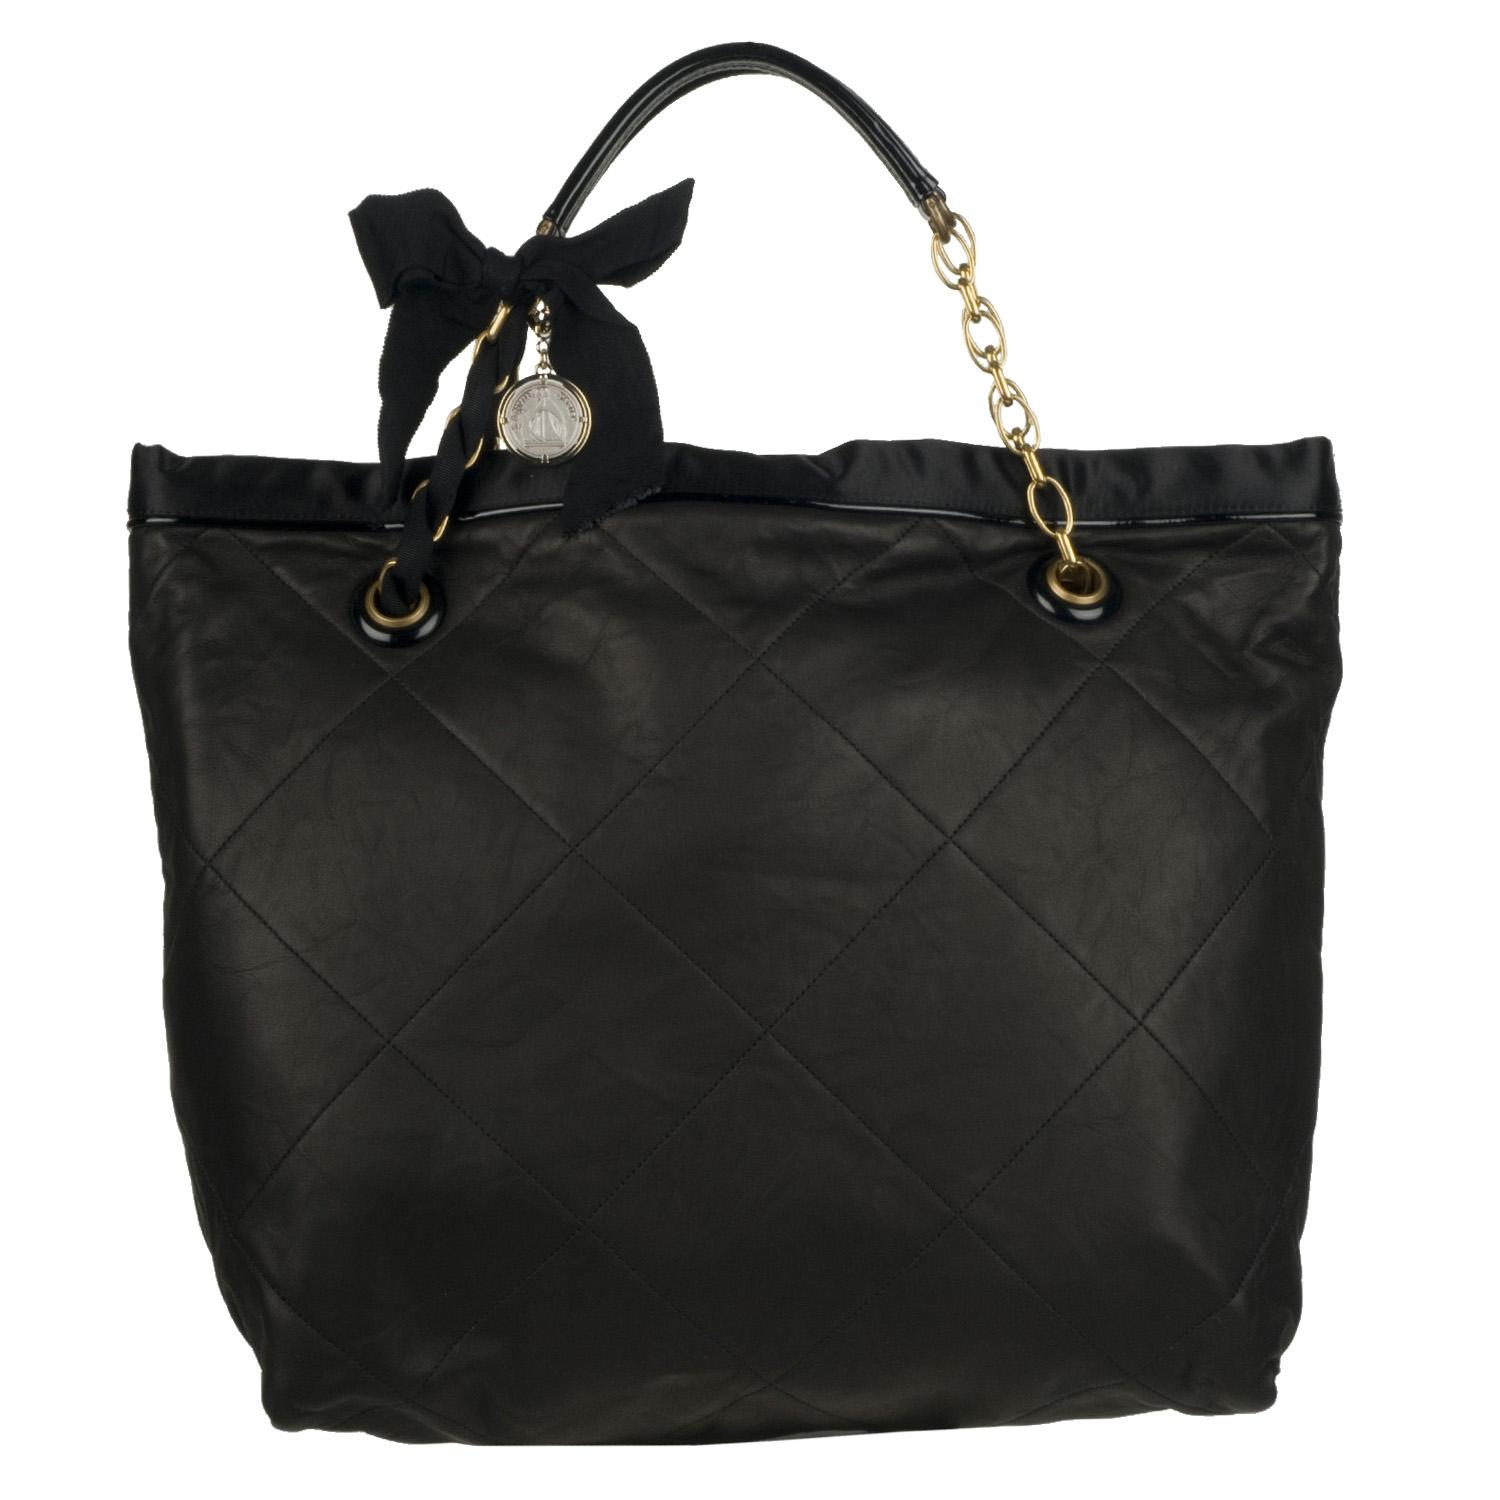 Lanvin 'Amalia' Black Quilted Leather Tote Bag - Free Shipping ...